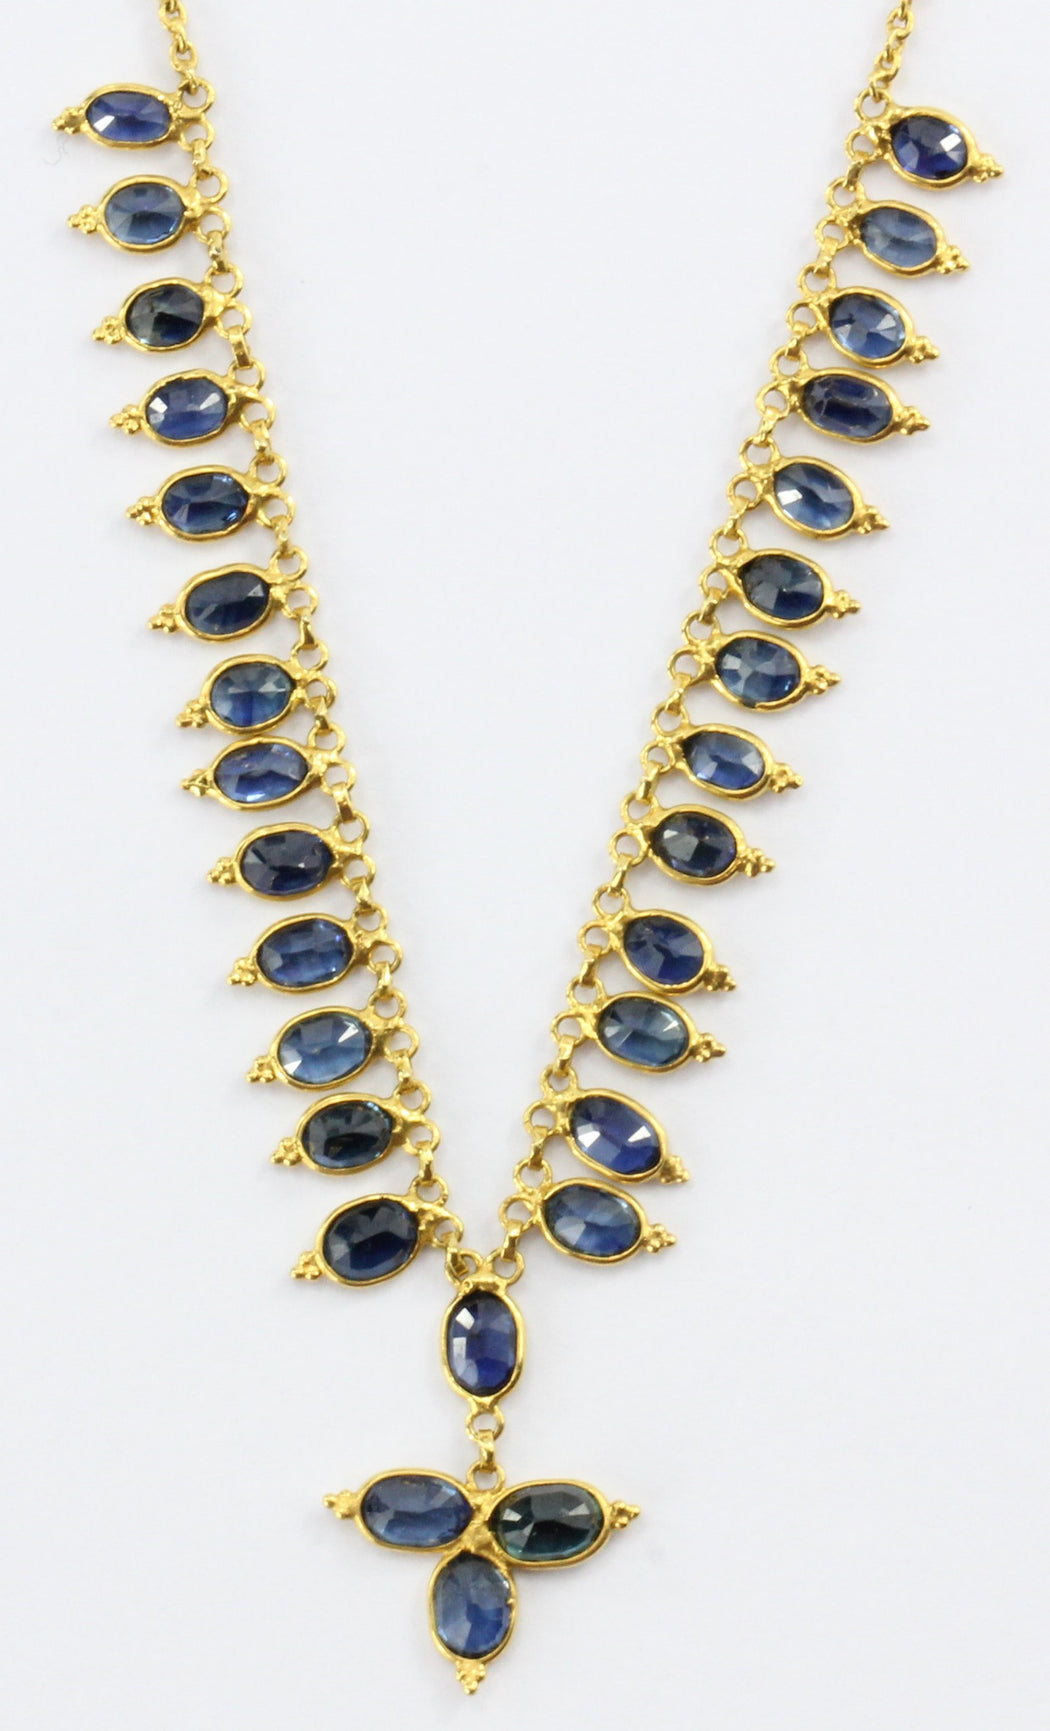 18K Gold 2.5 CTW Natural Blue Sapphire Necklace - Queen May